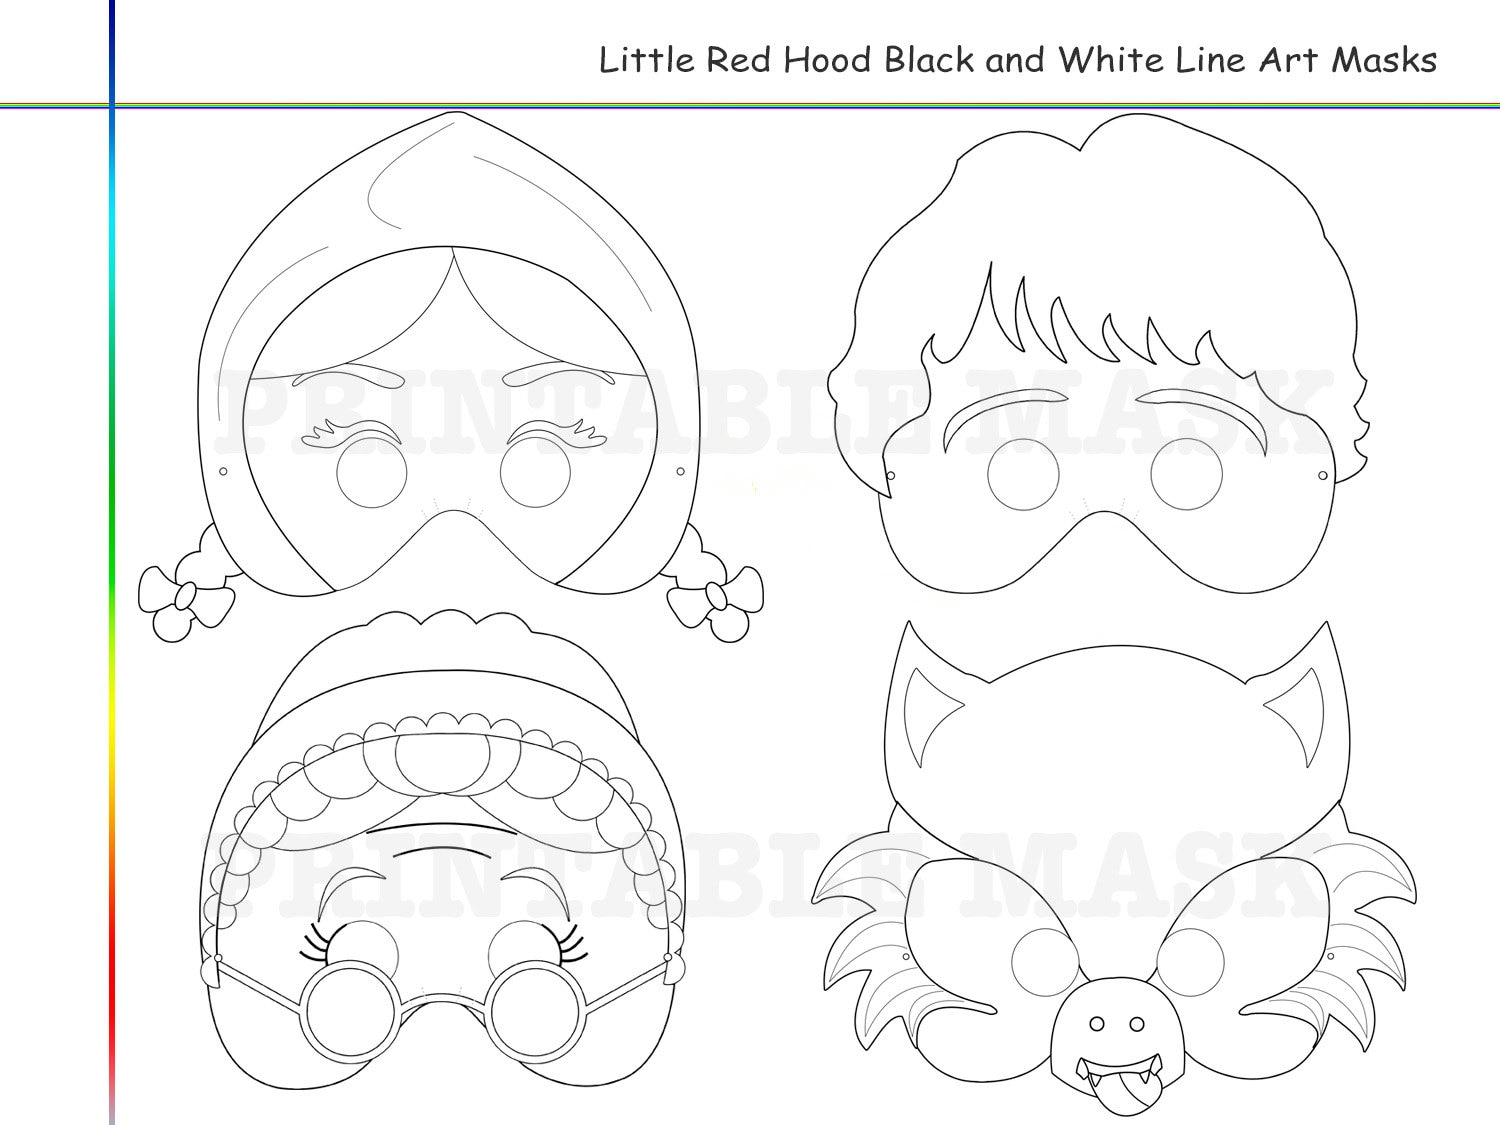 Coloring Pages Little Red Riding Hood Tale Printable Black and